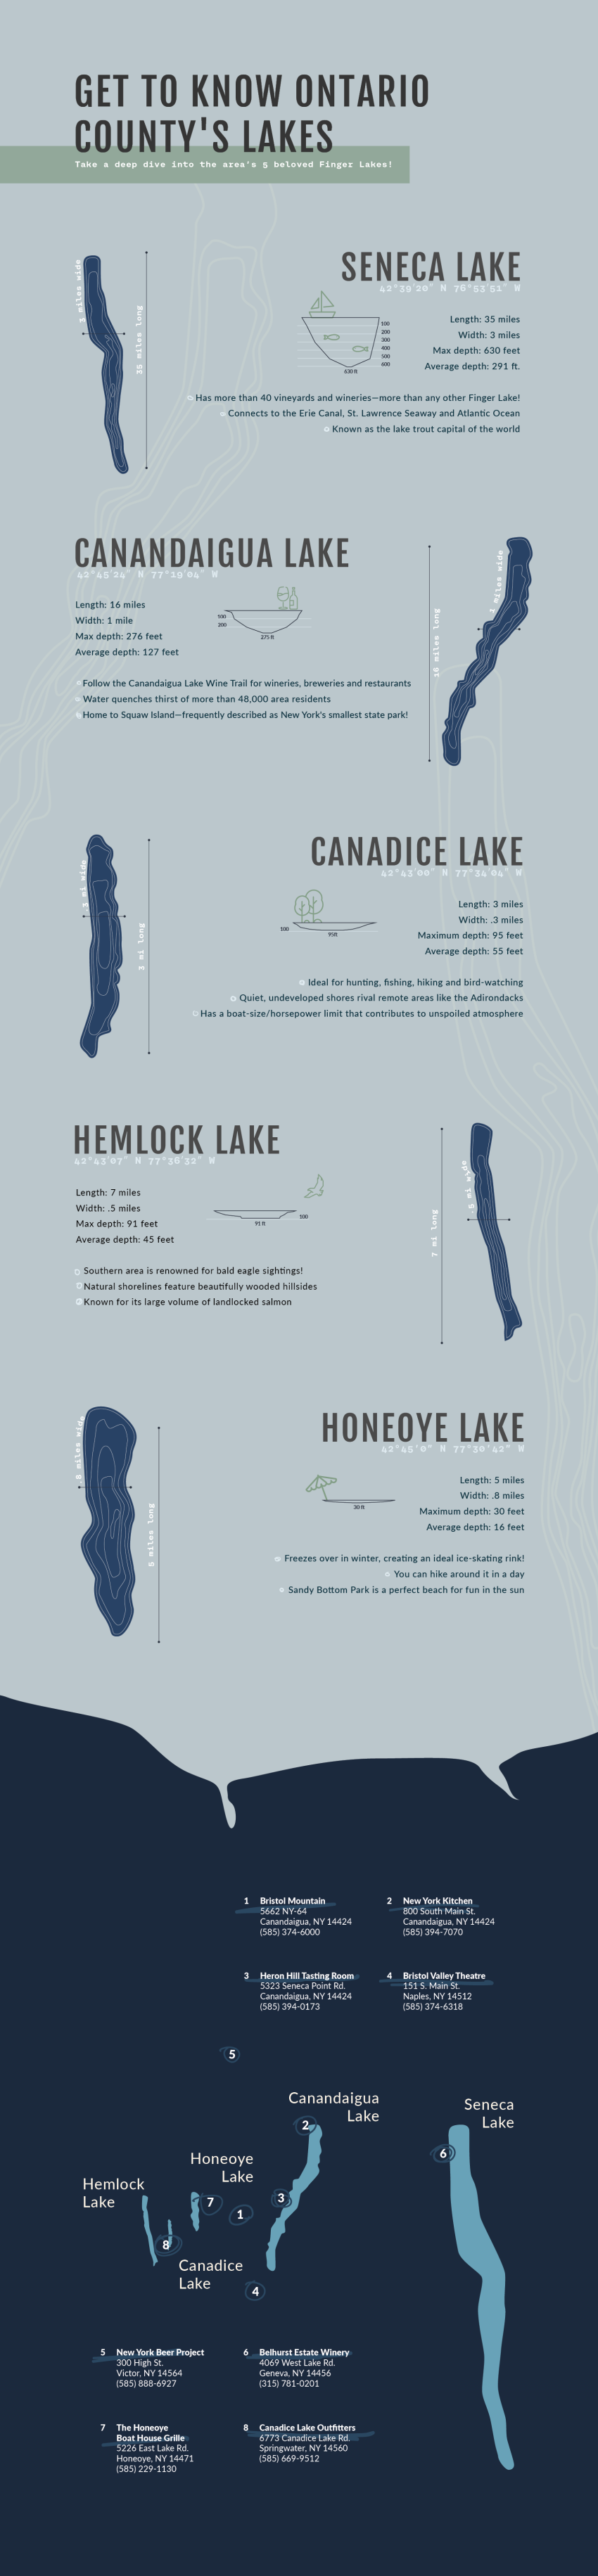 Get to Know Ontario County's Lakes Infographic